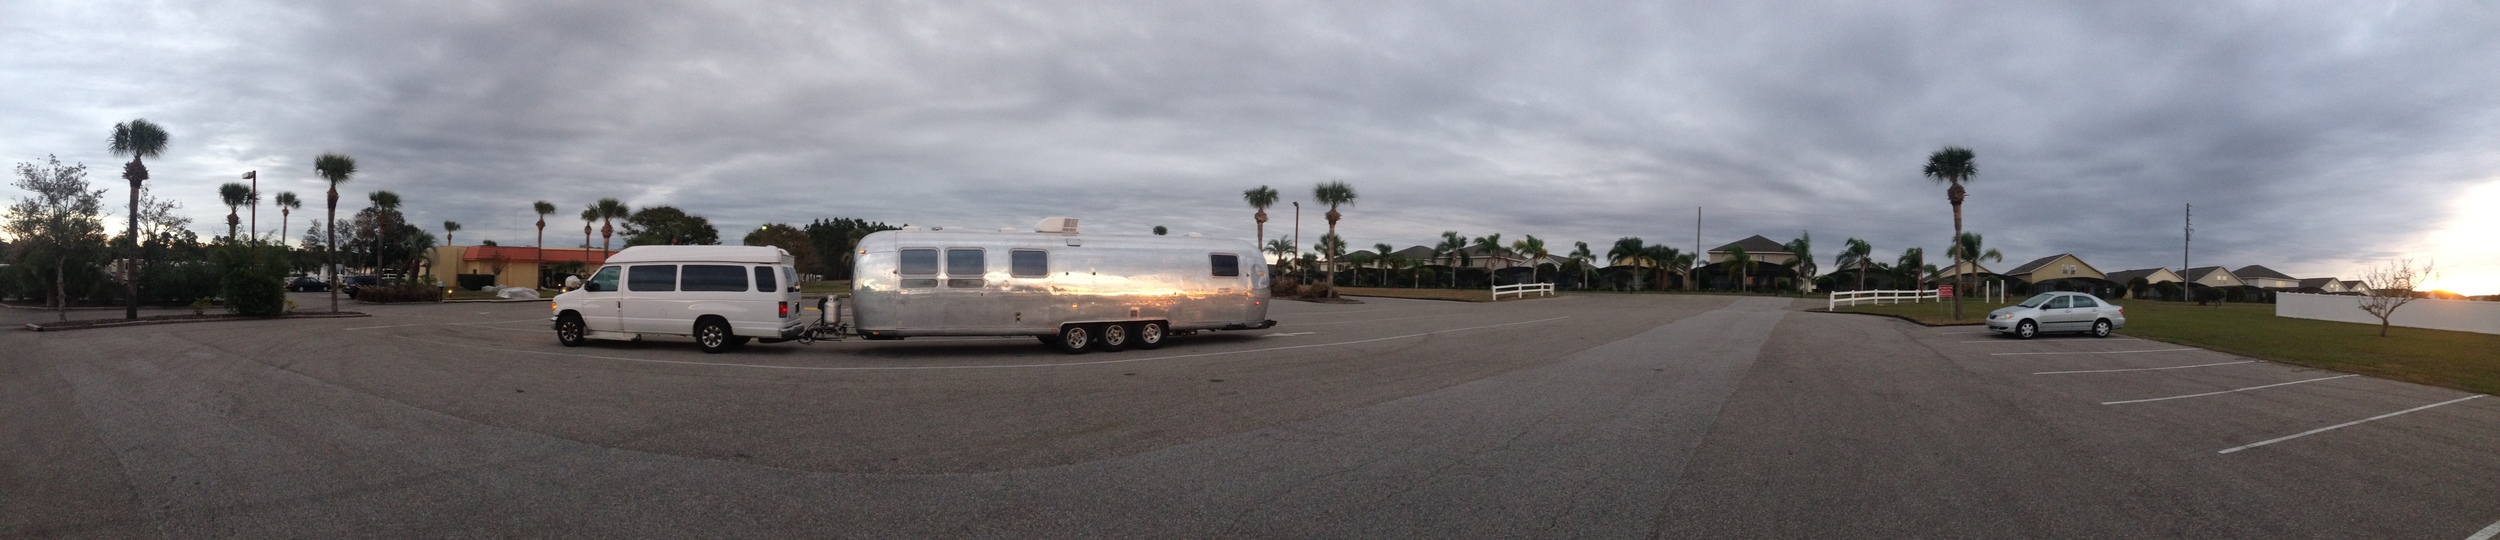 Pulling in to the campground at dusk.